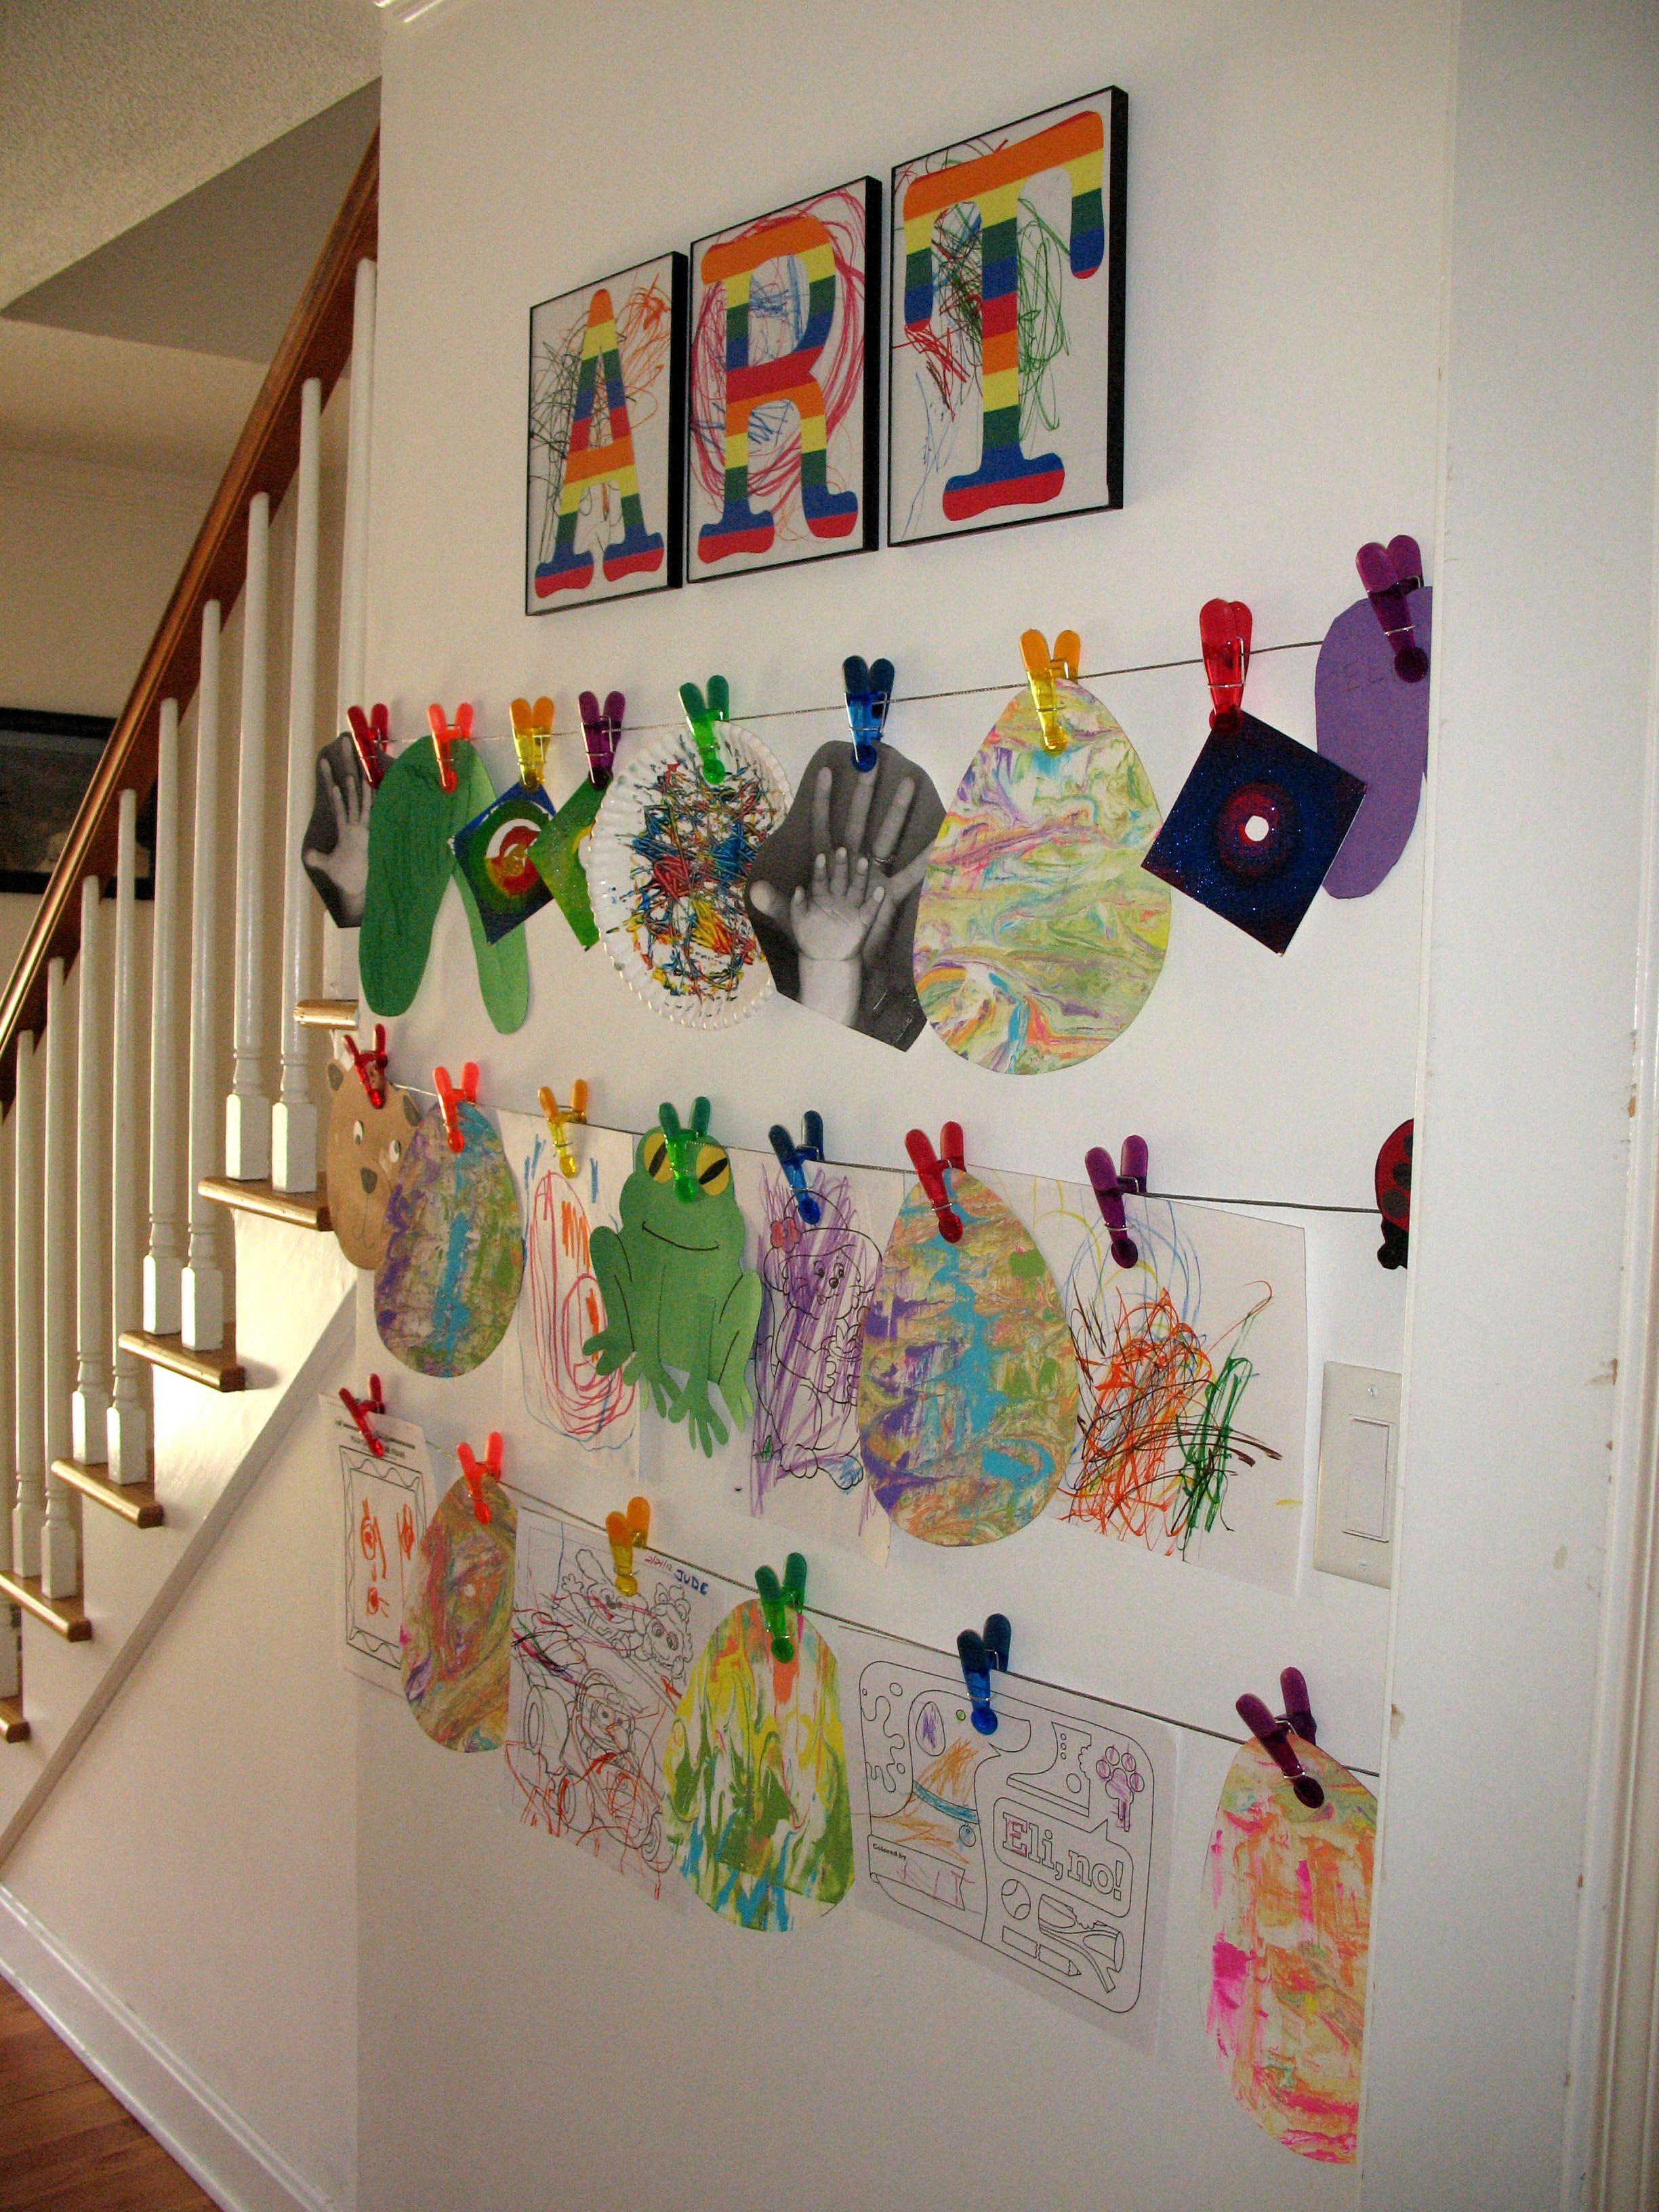 Hang Artwork From Wires In A Hallway Idea From